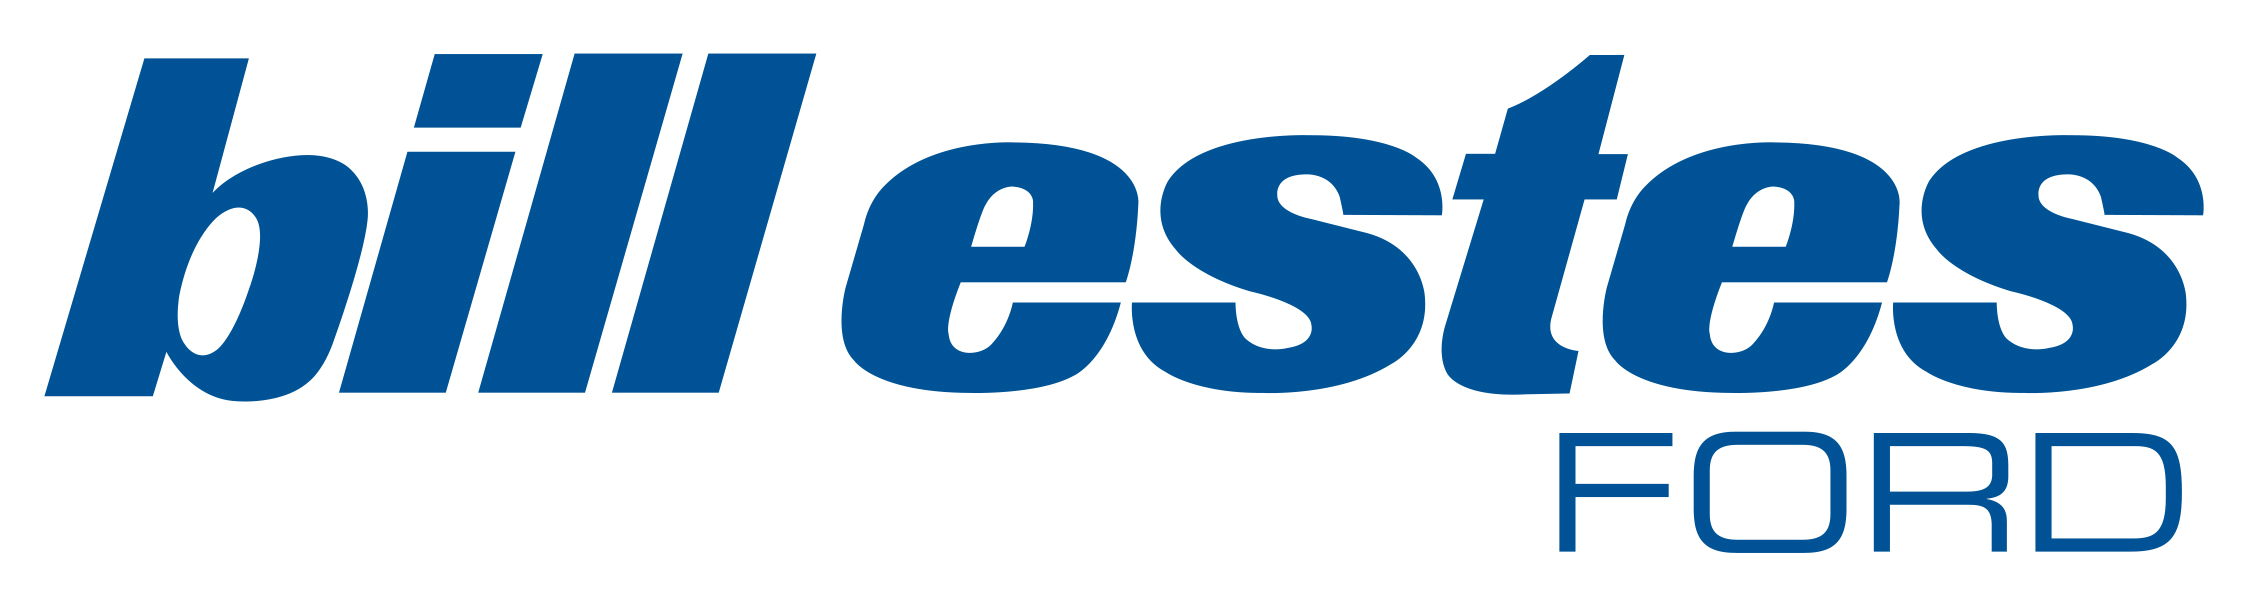 Bill Estes Ford logo